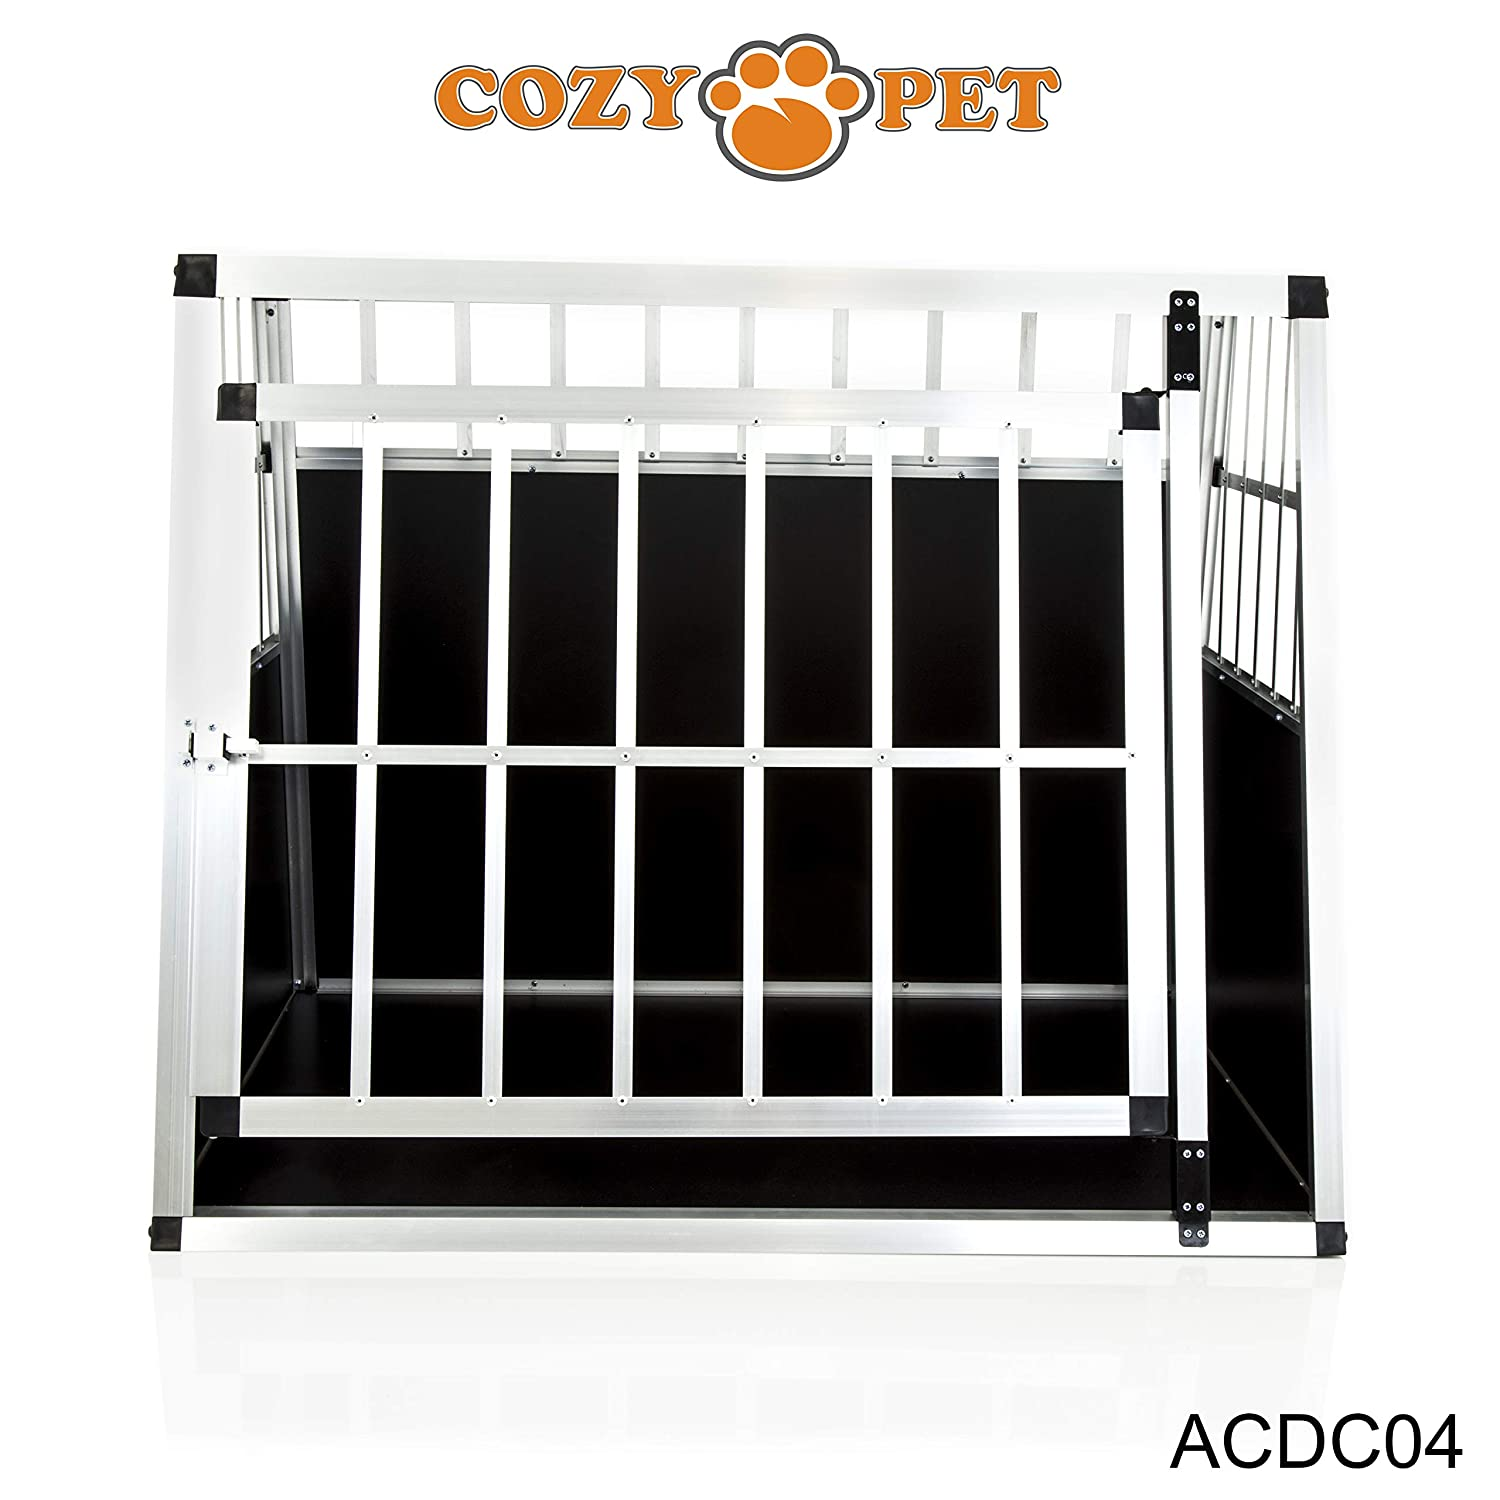 We do not ship to Northern Ireland, Scottish Highlands /& Islands, Channel Islands, IOM IOW. Cozy Pet Aluminium Car Dog Cage 6 Travel Puppy Crate Pet Carrier Transport Model ACDC03.